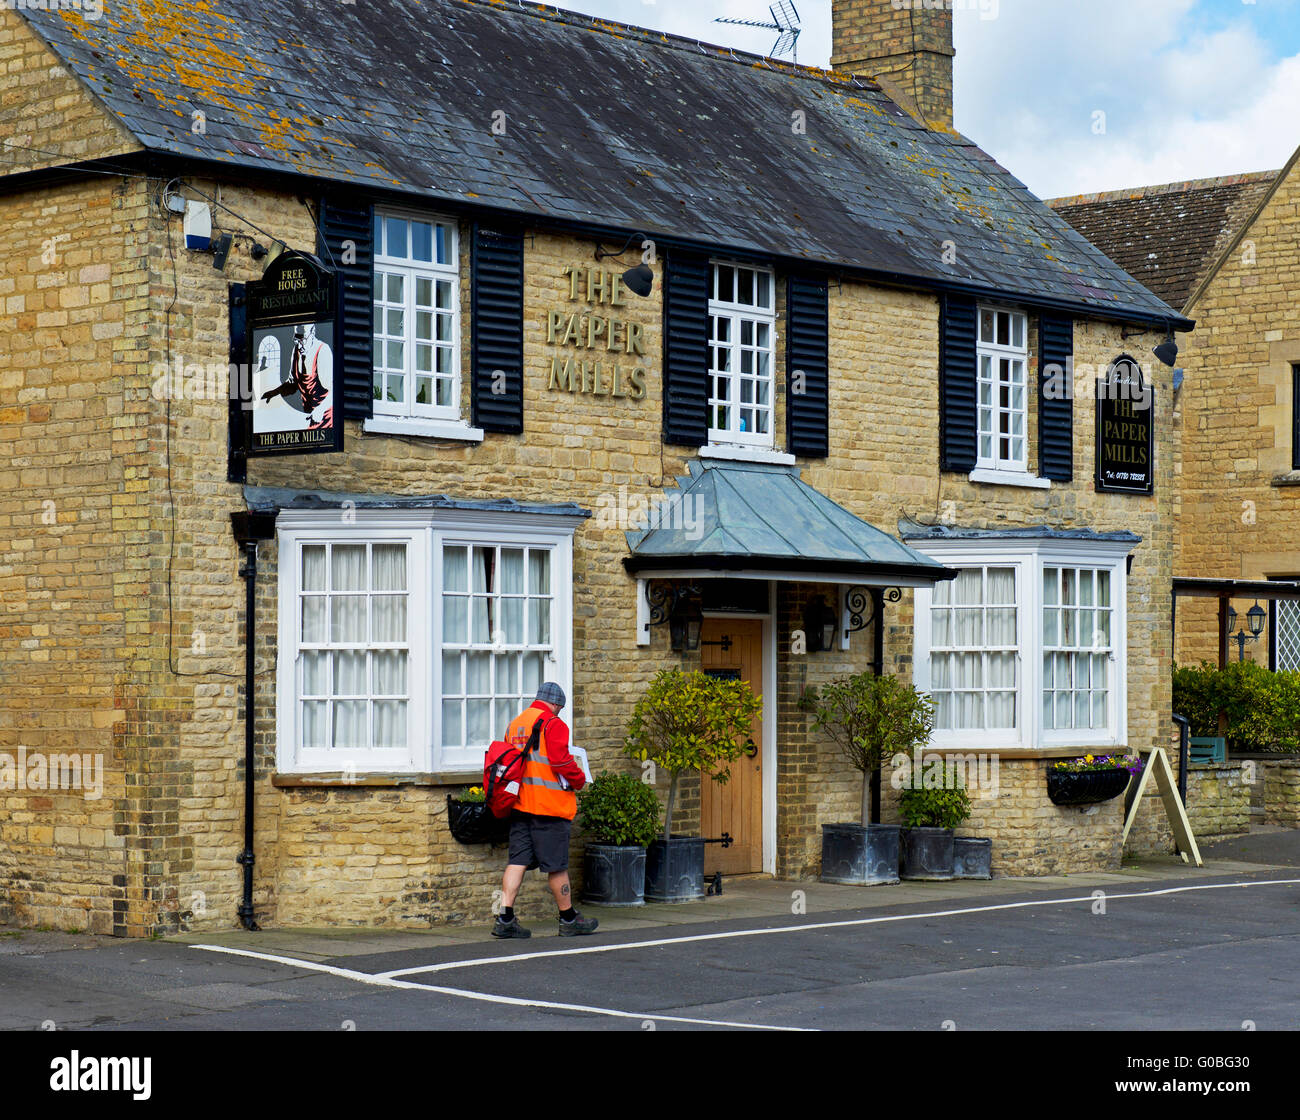 Postman delivering to the Paper Mills pub in the village of Wansford, Cambridgeshire, England UK - Stock Image